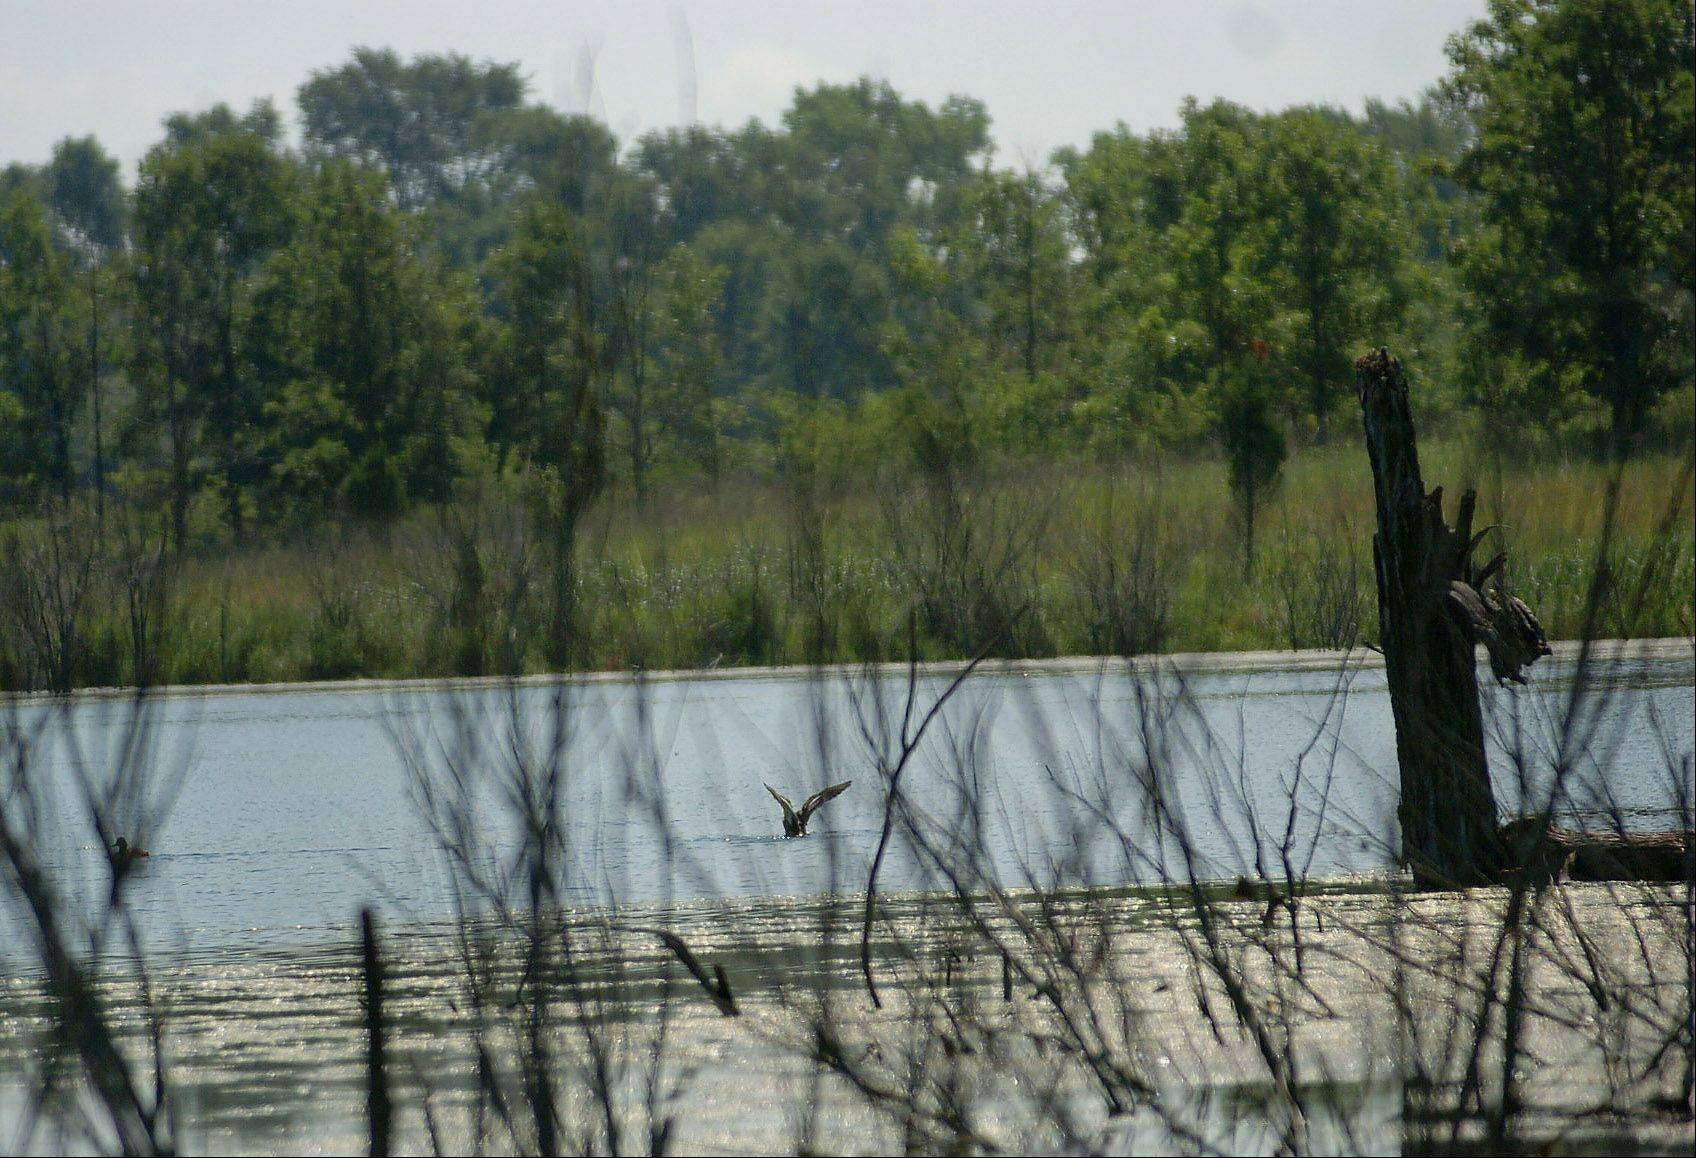 The Cuba Marsh Forest Preserve near Deer Park gives nature lovers an opportunity to enjoy the view.